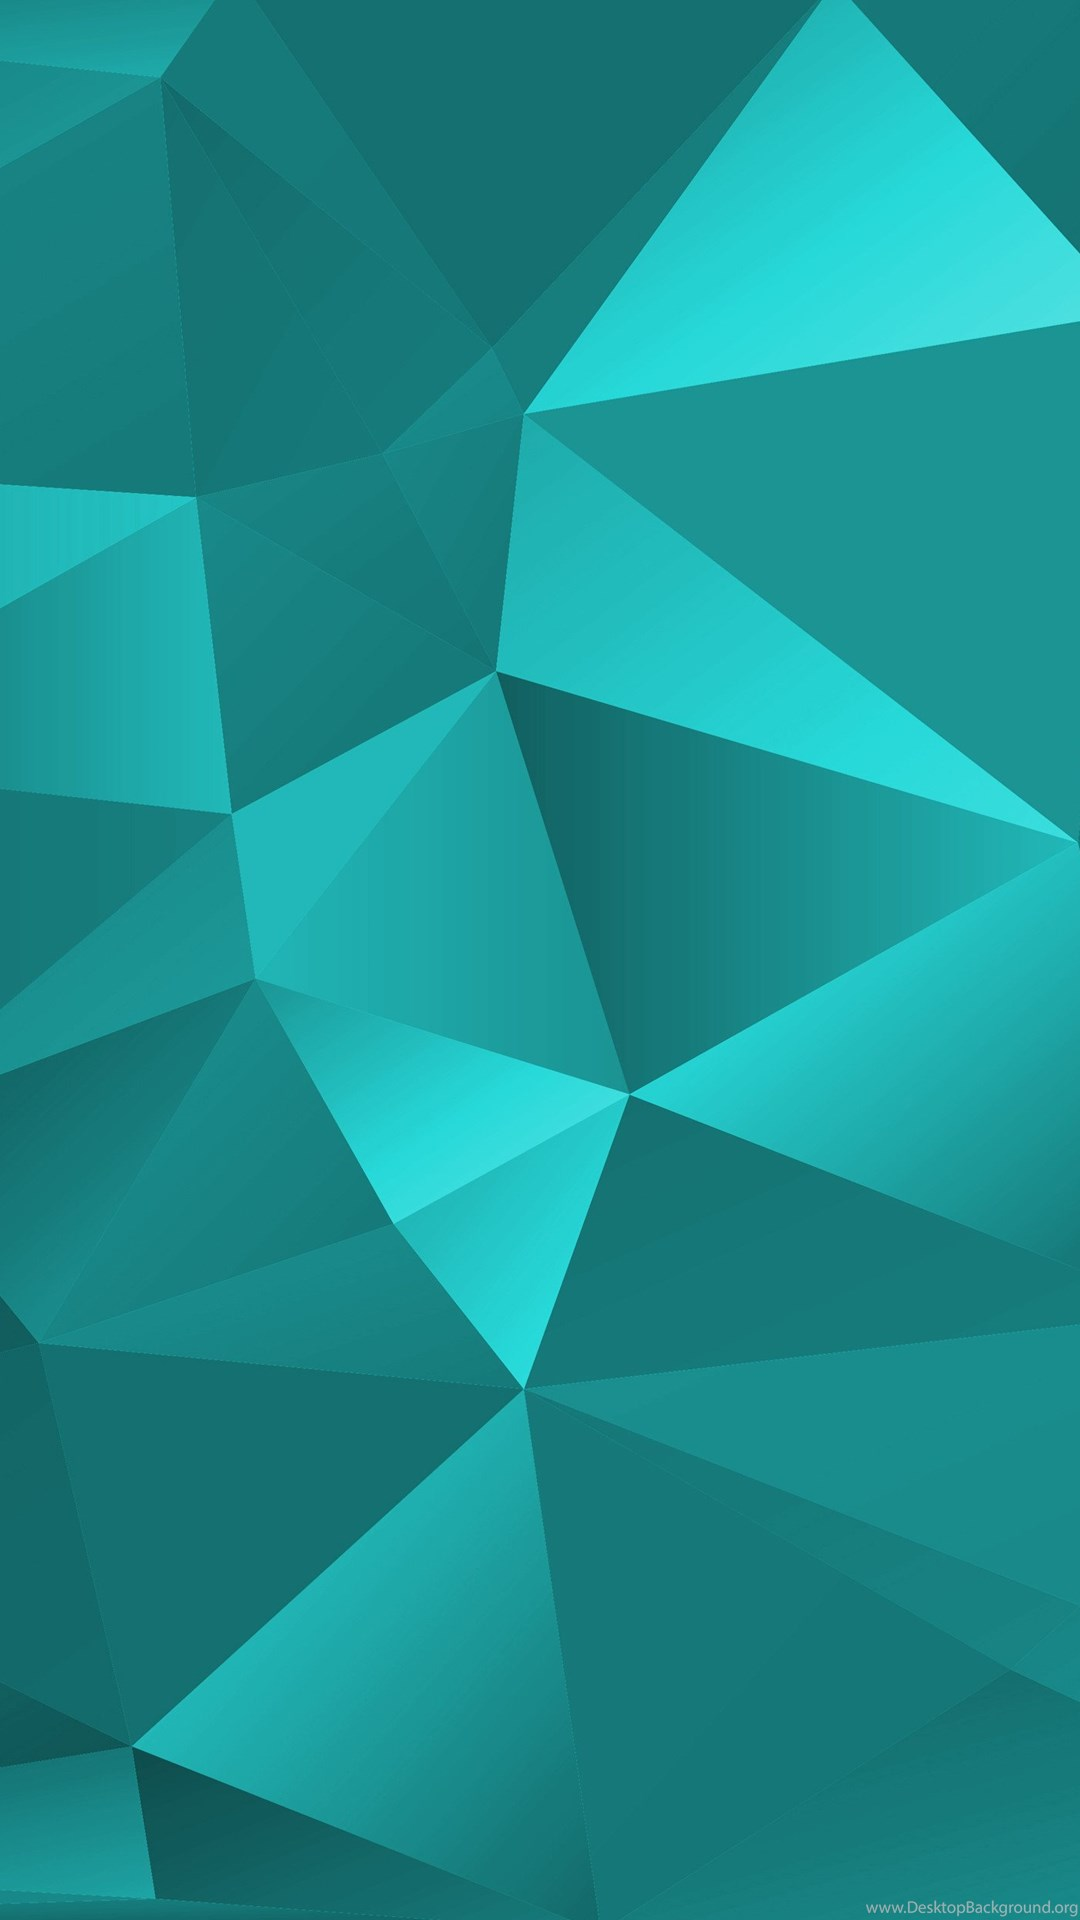 Turquoise Polygon Backgrounds Texturezine Desktop Background